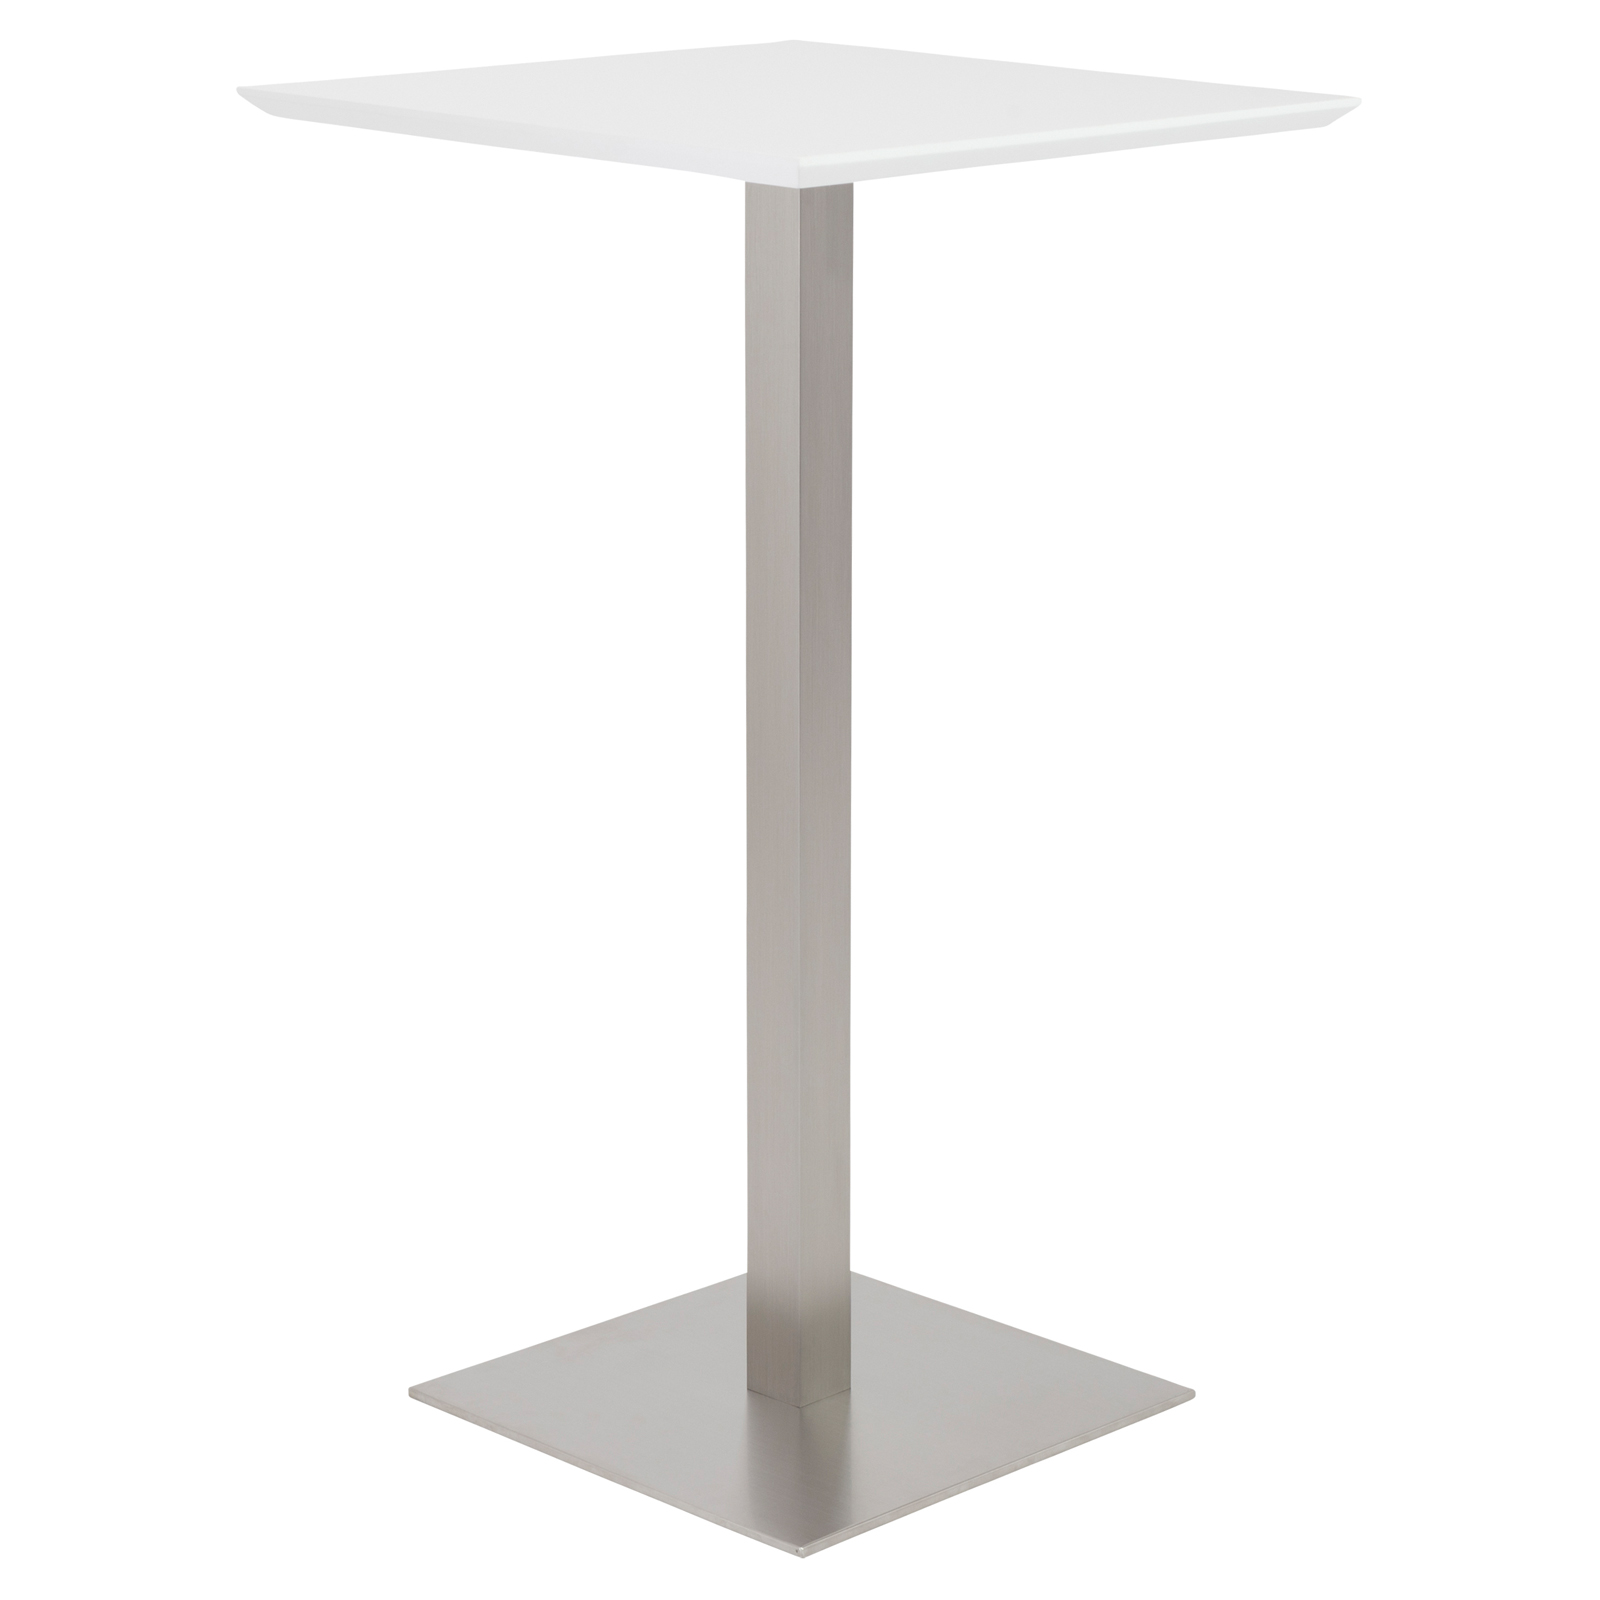 Euro Style Elodie Square Bar Table  Matte Whitebrushed. Corner Desk For Small Spaces. Metal Drawers Ikea. Desk With Add On Unit. Oval Dining Table. Table Top Banner. Troy University Help Desk. Vintage Writing Desk. Island Tables